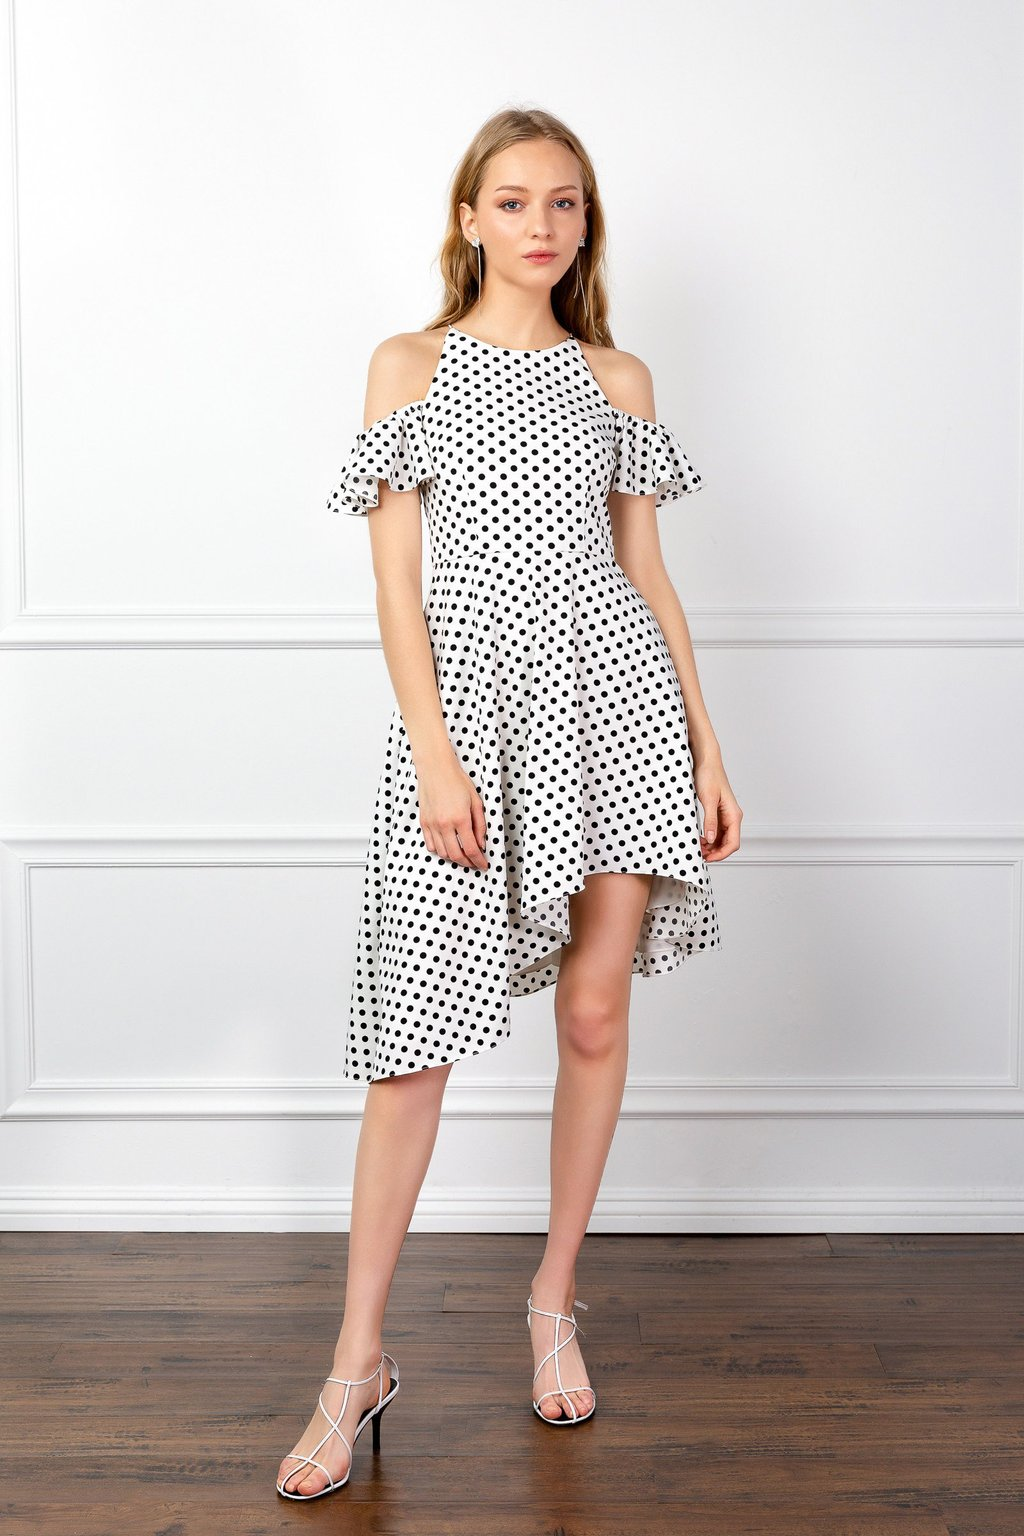 Renee polka dotted asymmetrical dress by J.ING women's fashion